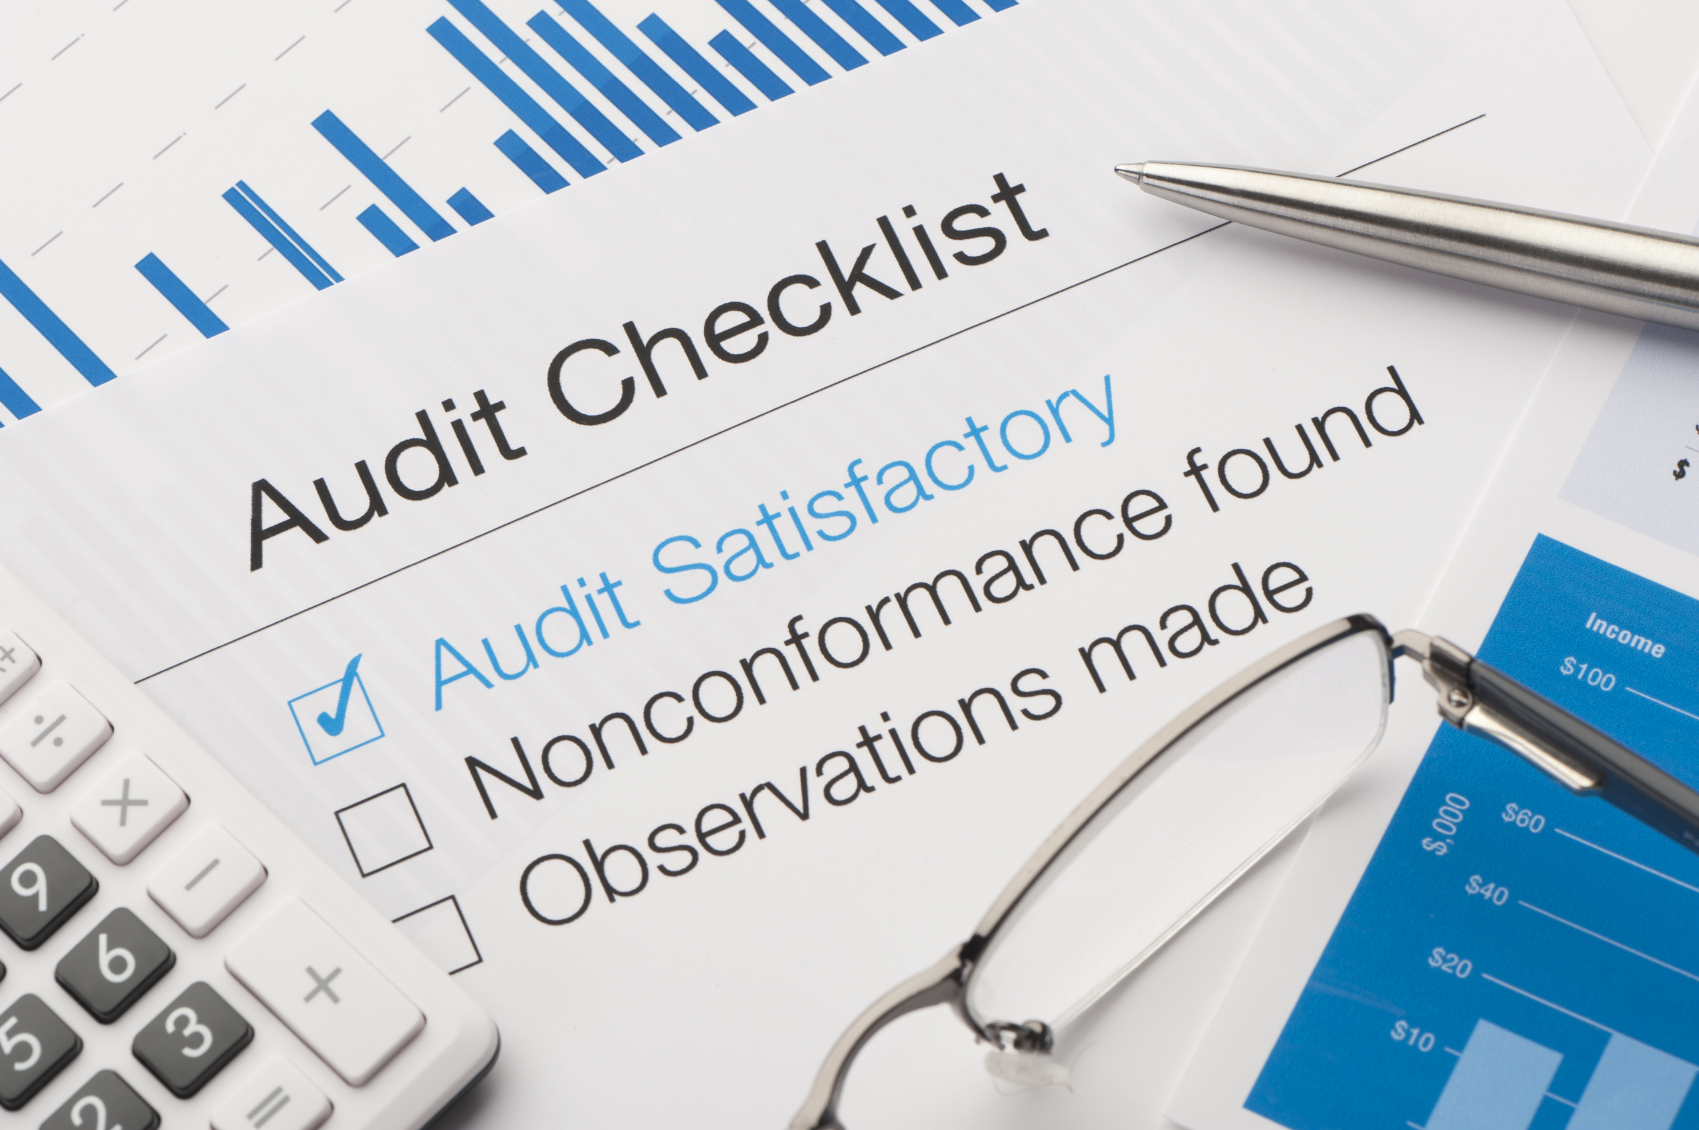 Country Audit Checklists